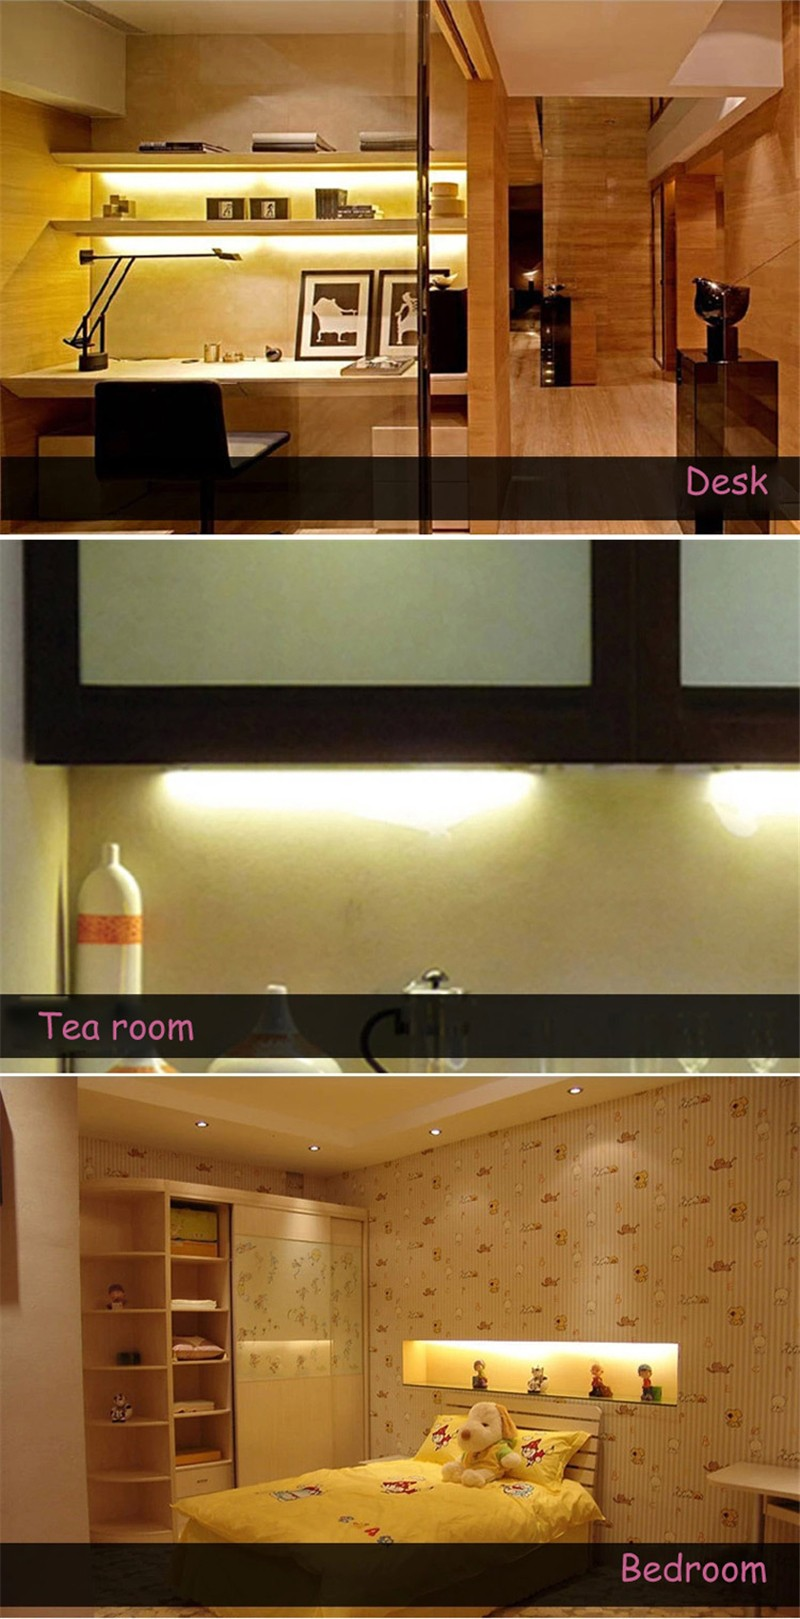 2pcs Dimmable Under Cabinet Strip Lighting7020 7030 9w 50cm Touch Switch Control Kitchen Led Light B Dc12v Rigid Strip Light 2pcs Dc12v Touch Sensor Led Bar Light Dimmable 50cm Ultra Thin Led